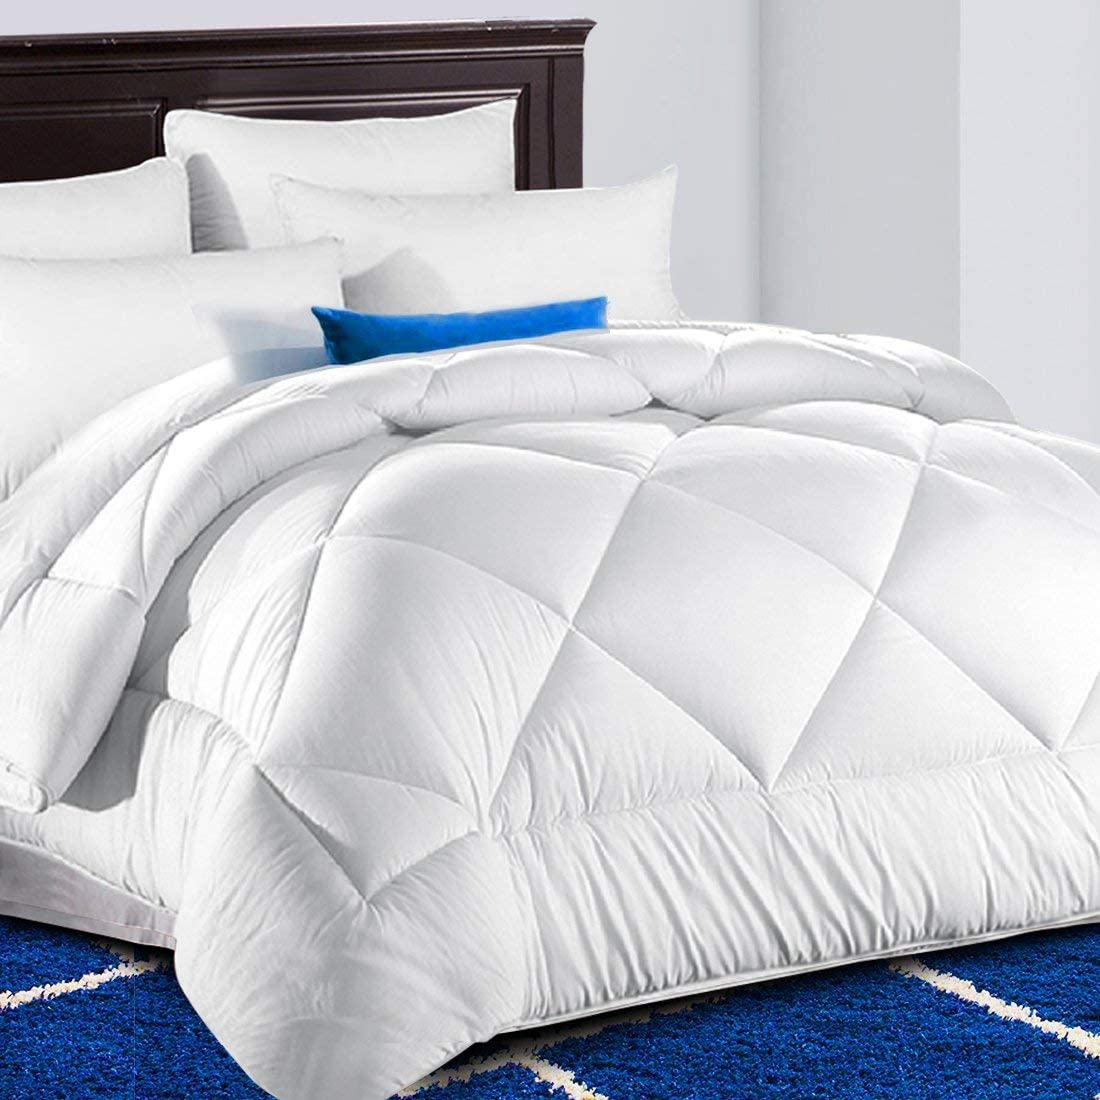 Snow White Fluffy Reversible Summer Cool Collection for Hotel TEKAMON All Season Oversized Queen Comforter Soft Quilted Down Alternative Duvet Insert with Corner Tabs 98 x 98 inches